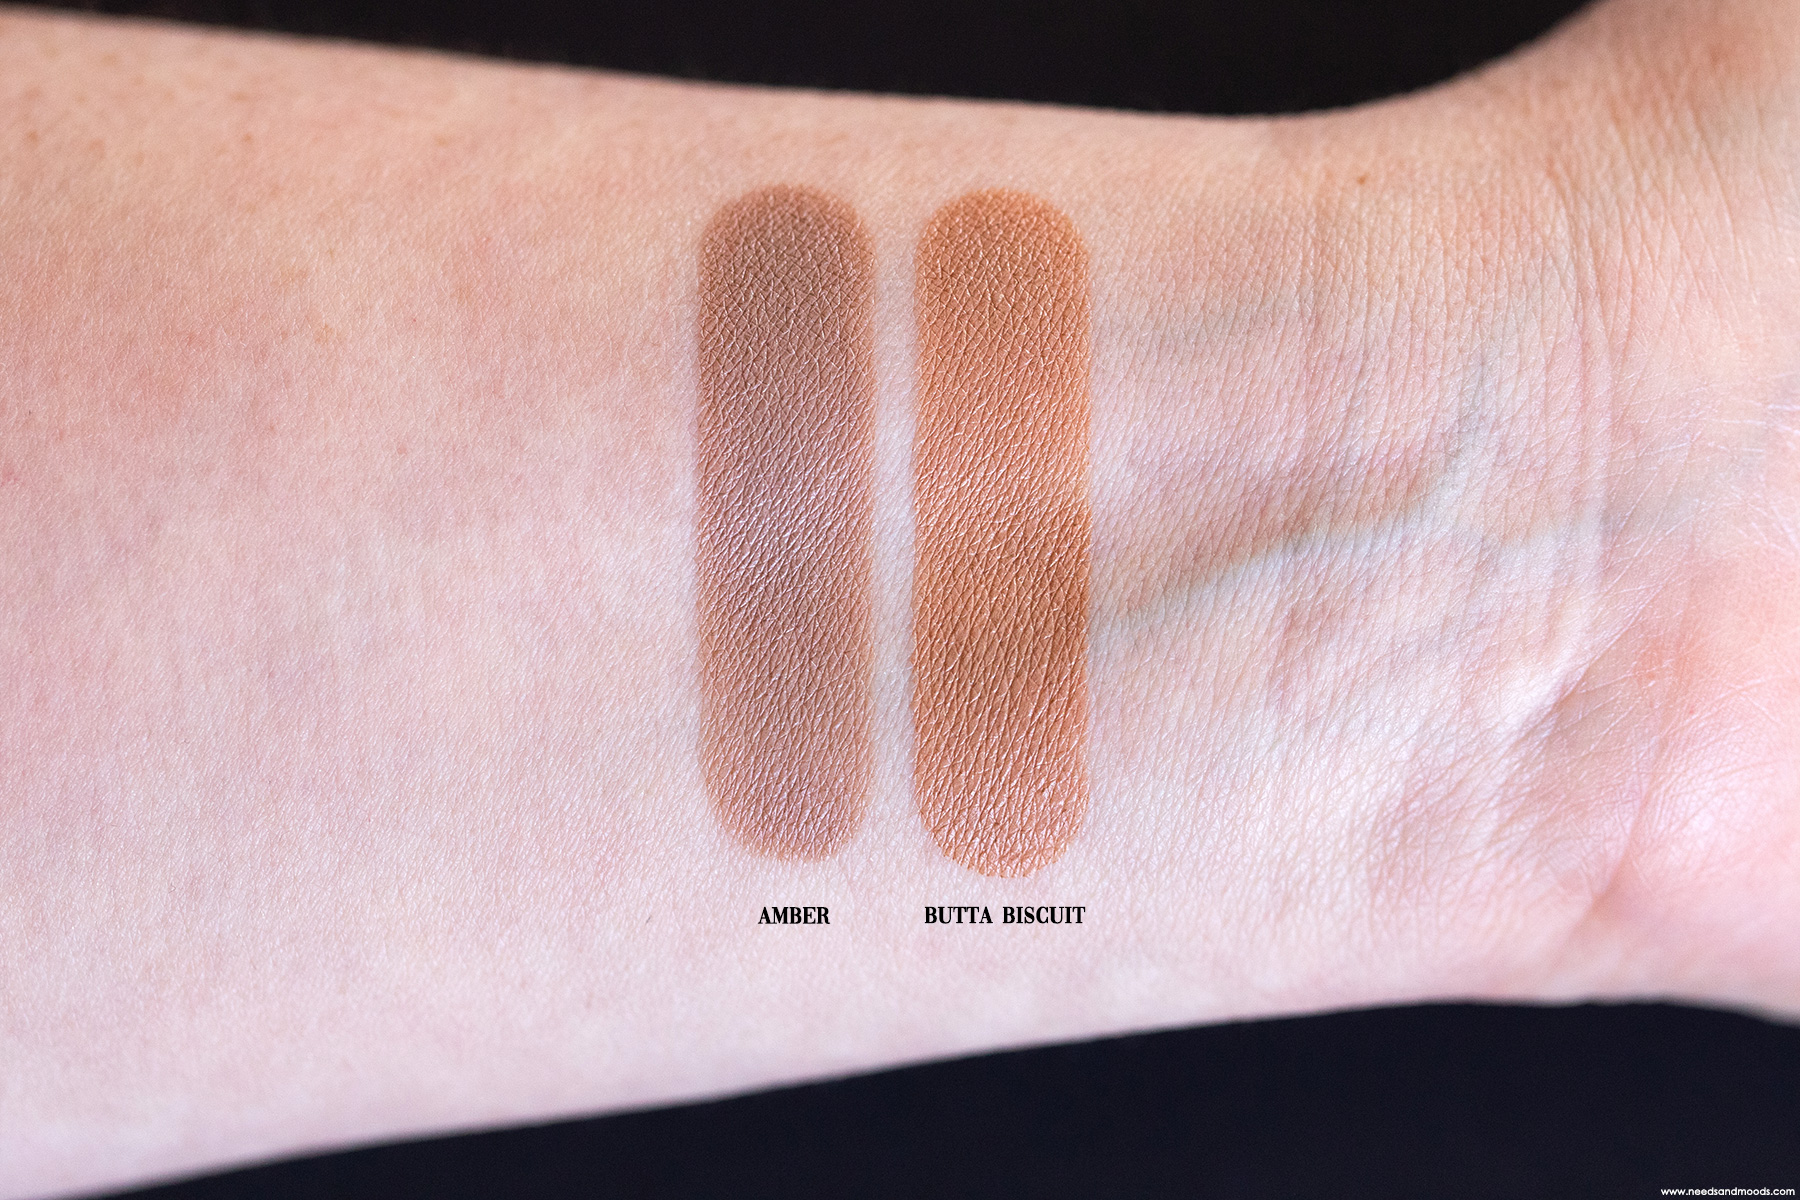 fenty-beauty-cheeks-out-freestyle-bronzer-creme-swatch-amber-butta-biscuit